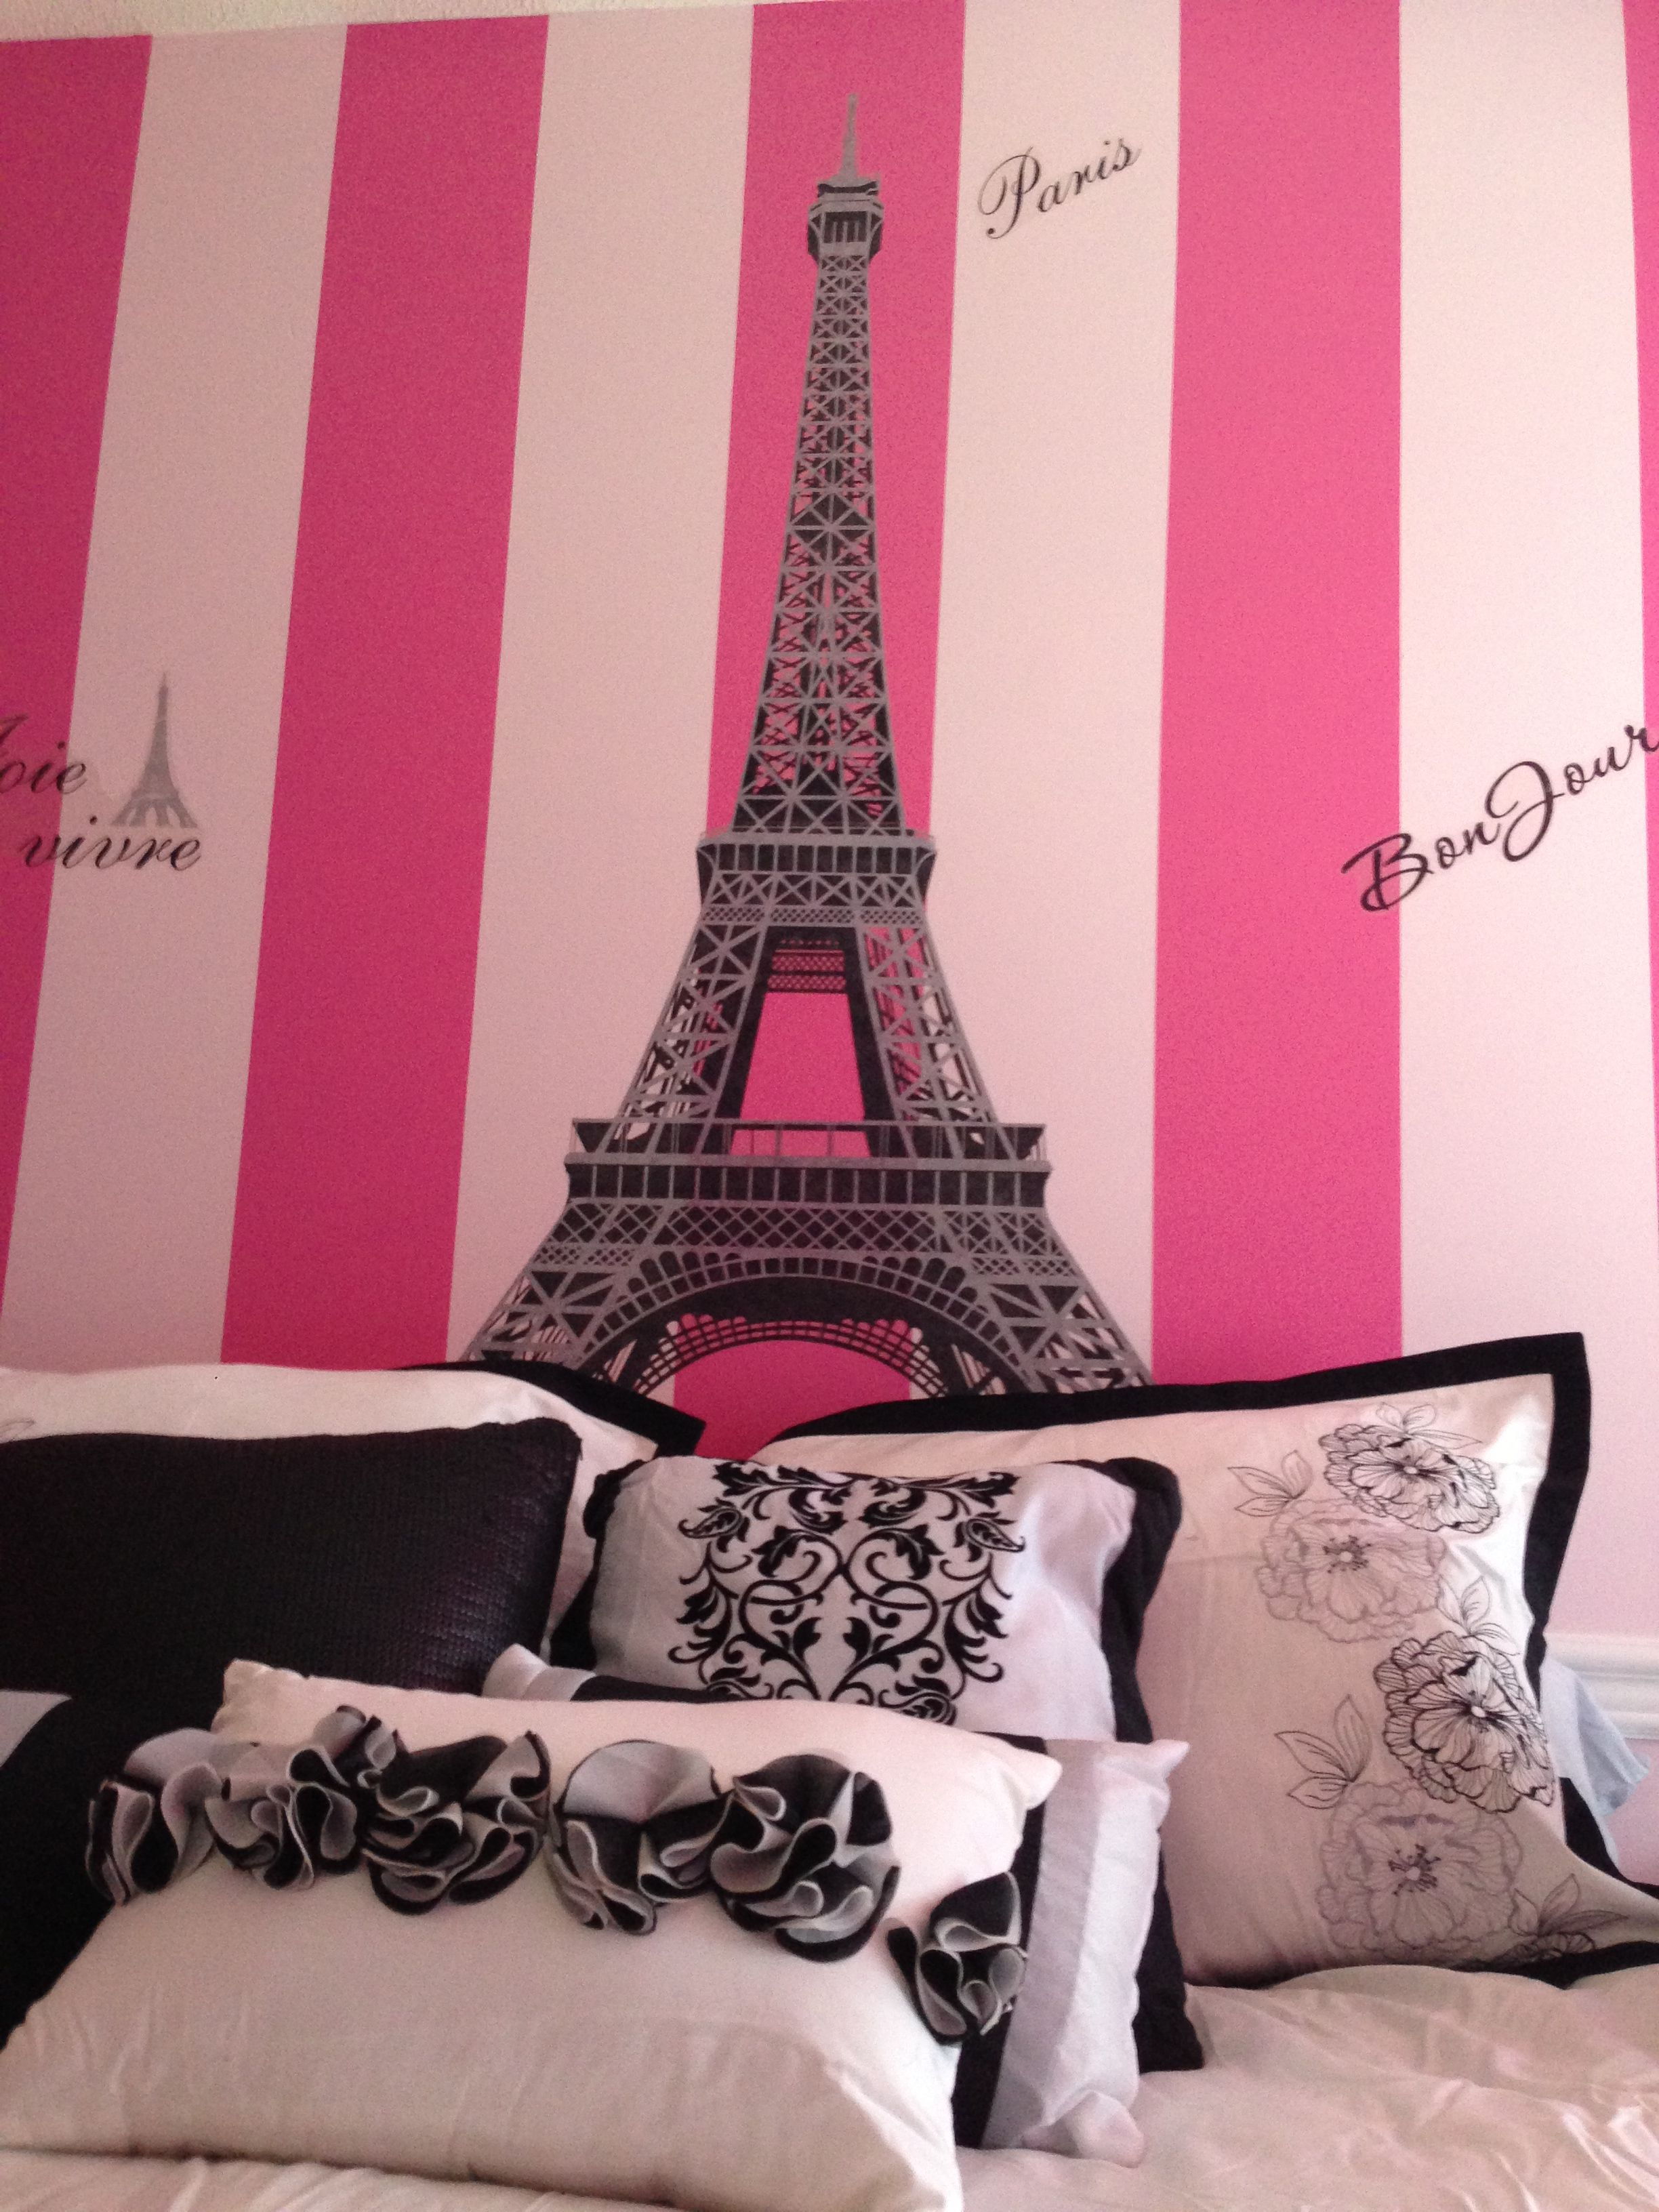 20 Chic Rooms Inspired By Paris Home Design Interior Decorating Bedroom Ideas Paris Themed Bedroom Decor Paris Themed Bedroom Paris Room Decor